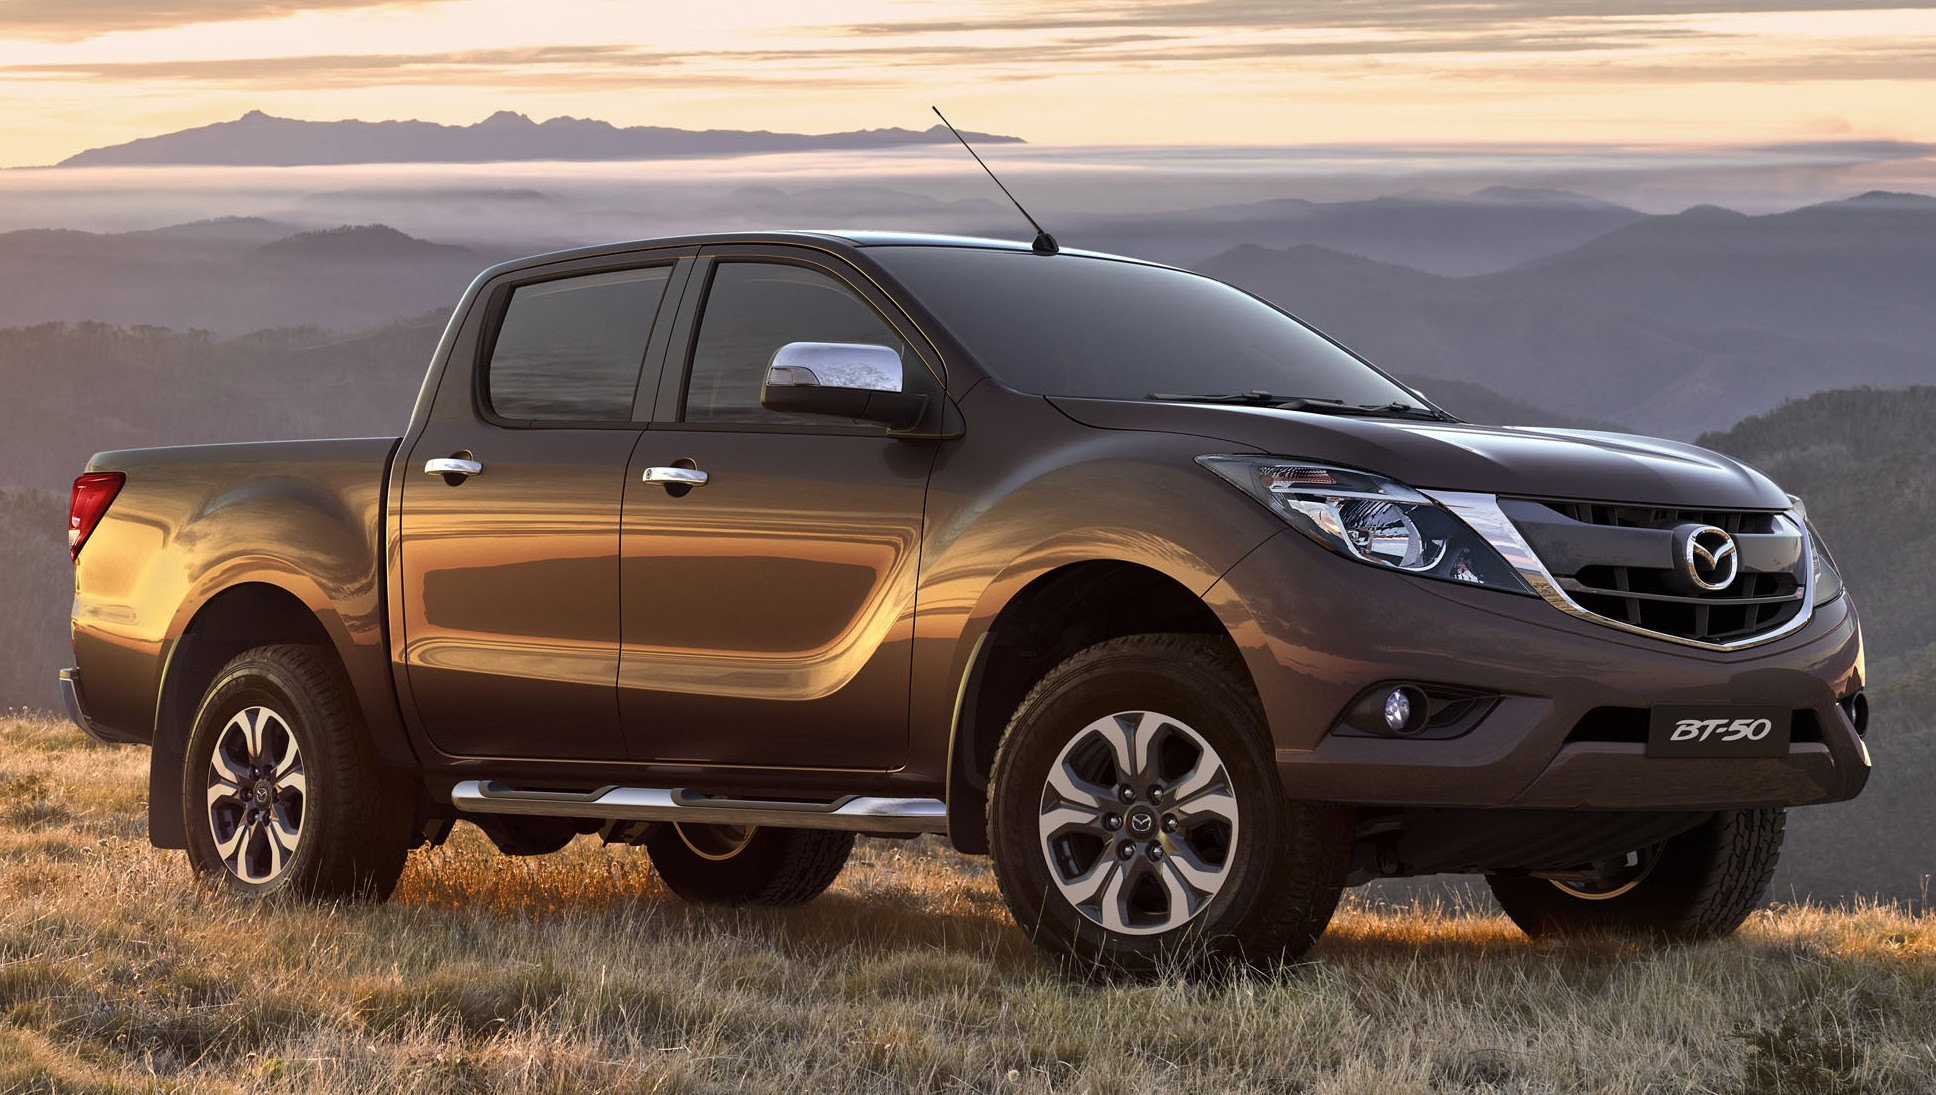 2016 mazda bt 50 fl launched in m 39 sia from rm105k. Black Bedroom Furniture Sets. Home Design Ideas